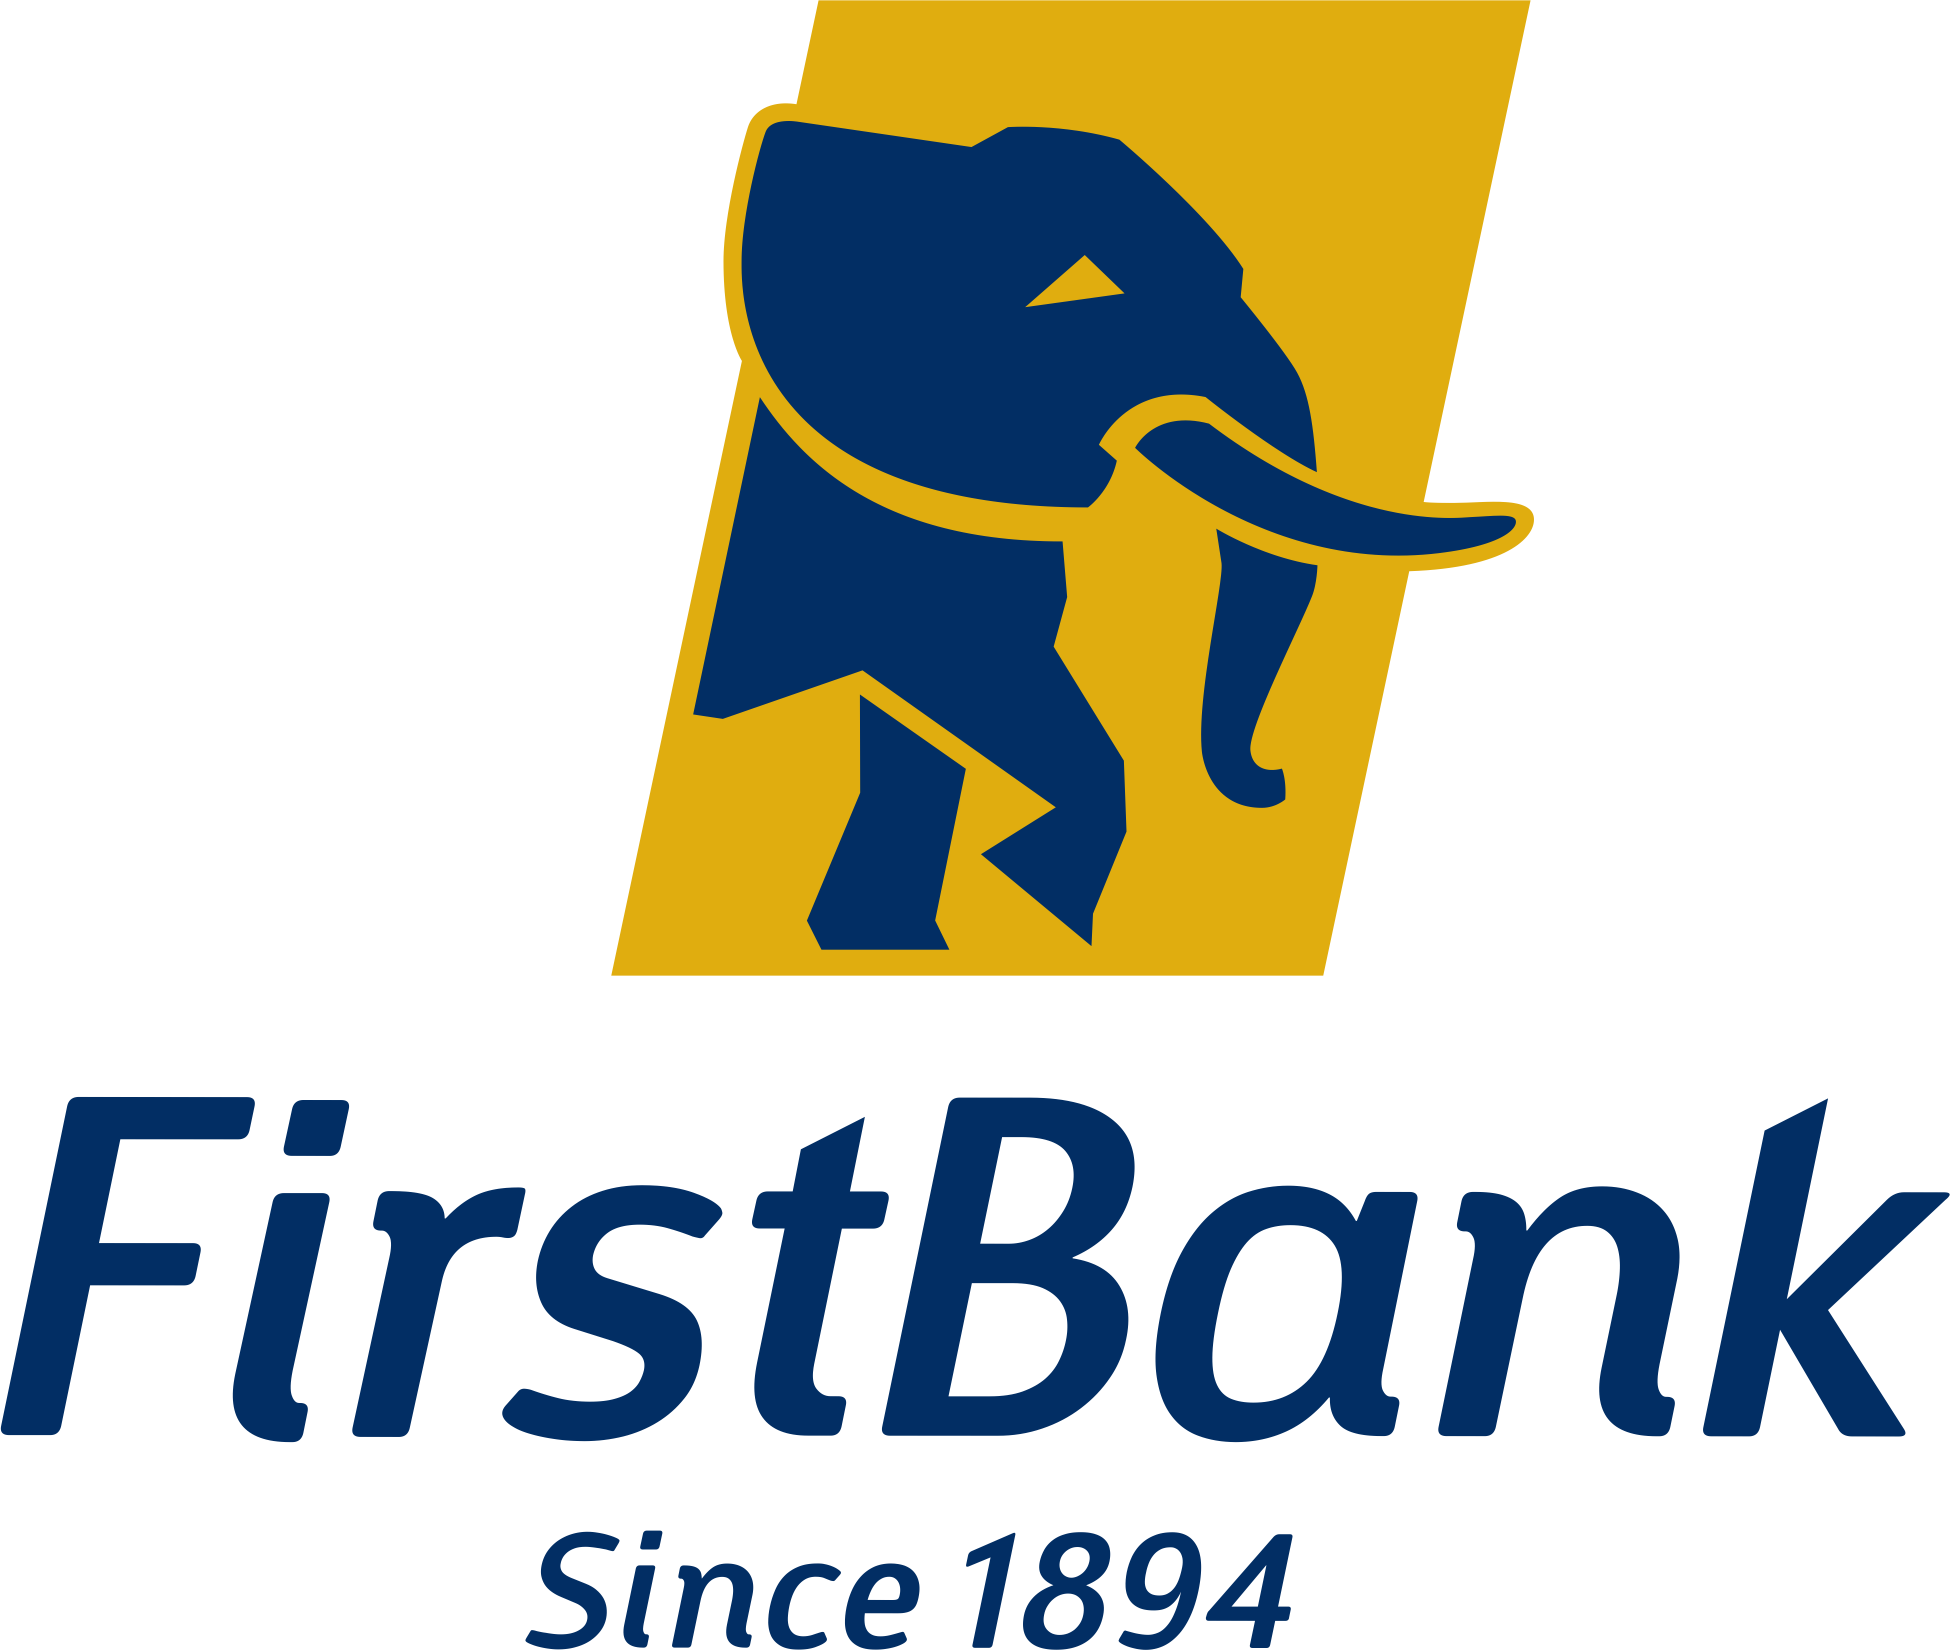 FIRSTBANK UPGRADES ITS MOBILE BANKING APPLICATION, REINFORCES ITS EDGE AT PUTTING CUSTOMERS AHEAD IN ELECTRONIC BANKING